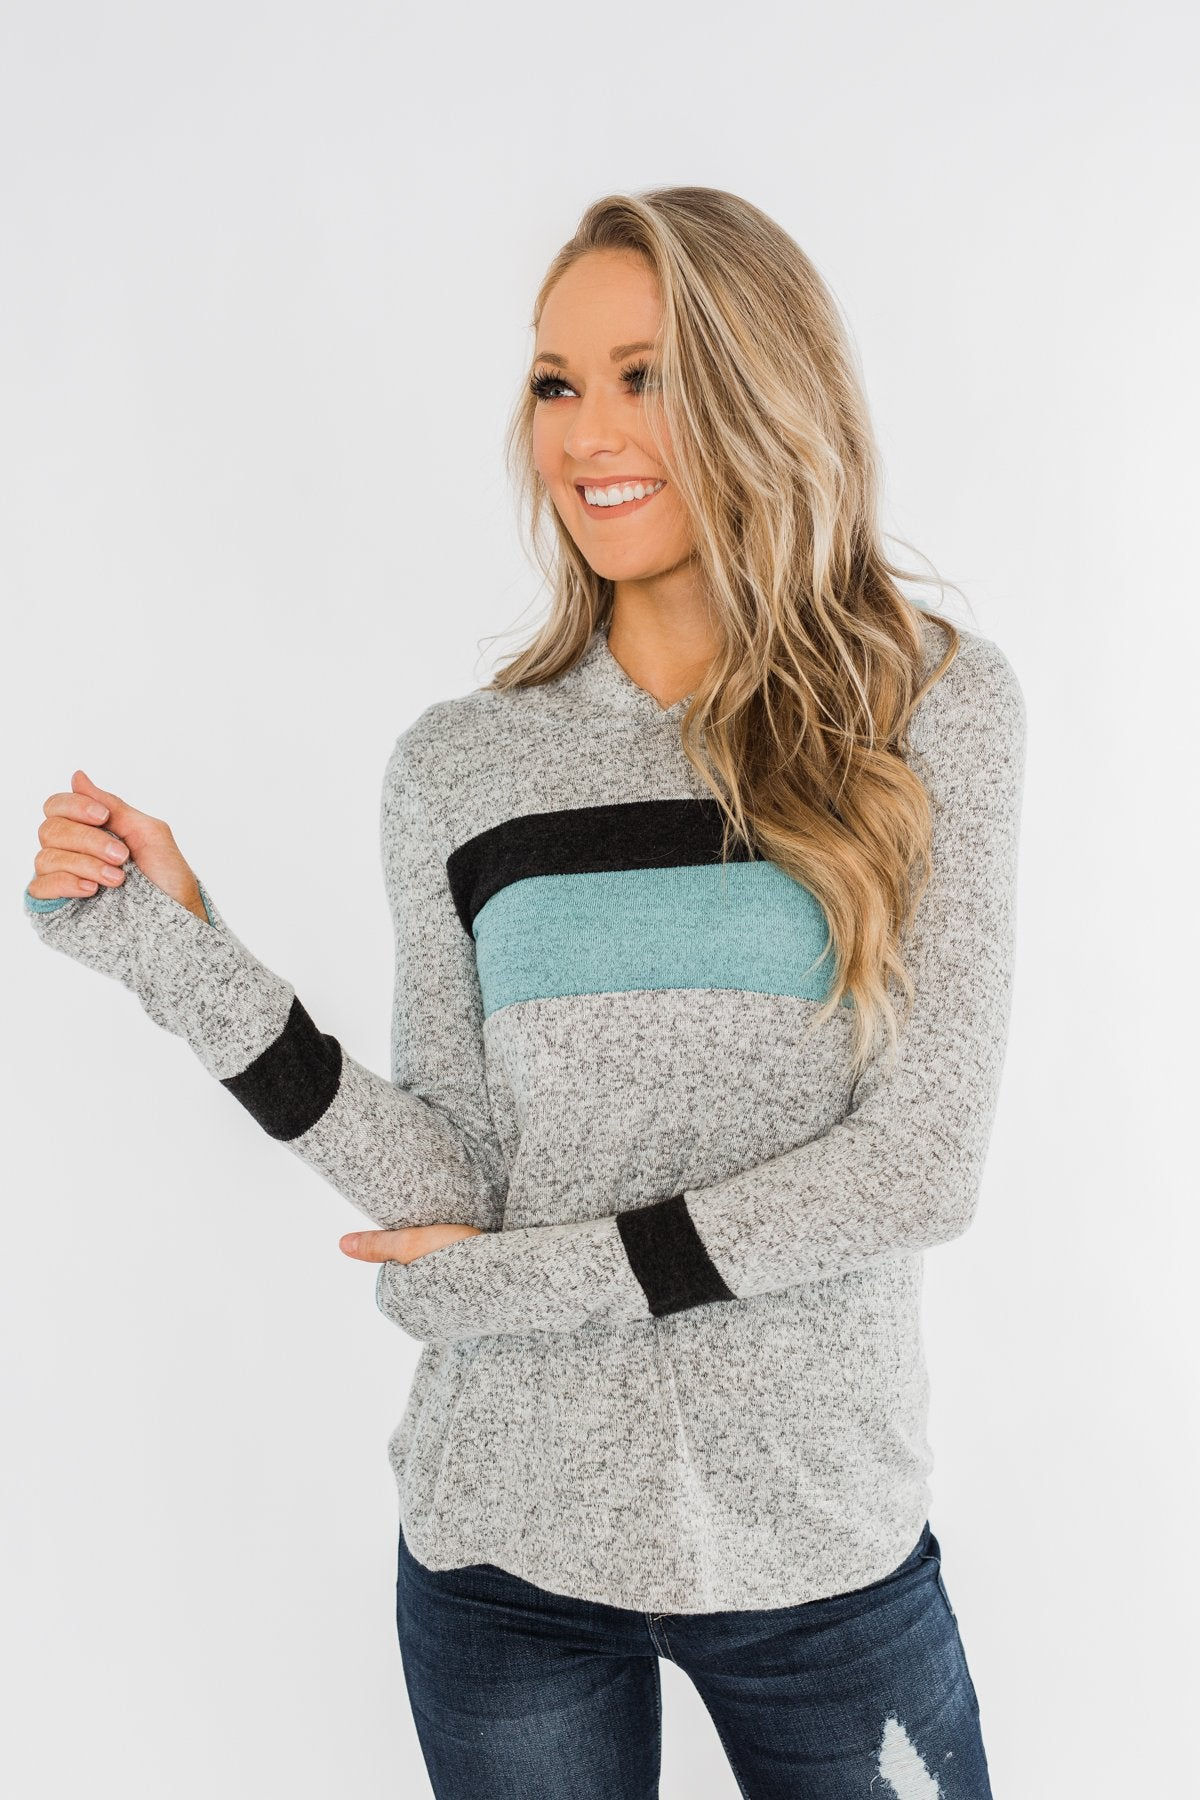 Only A Matter Of Time Hoodie- Heather Grey & Mint Blue